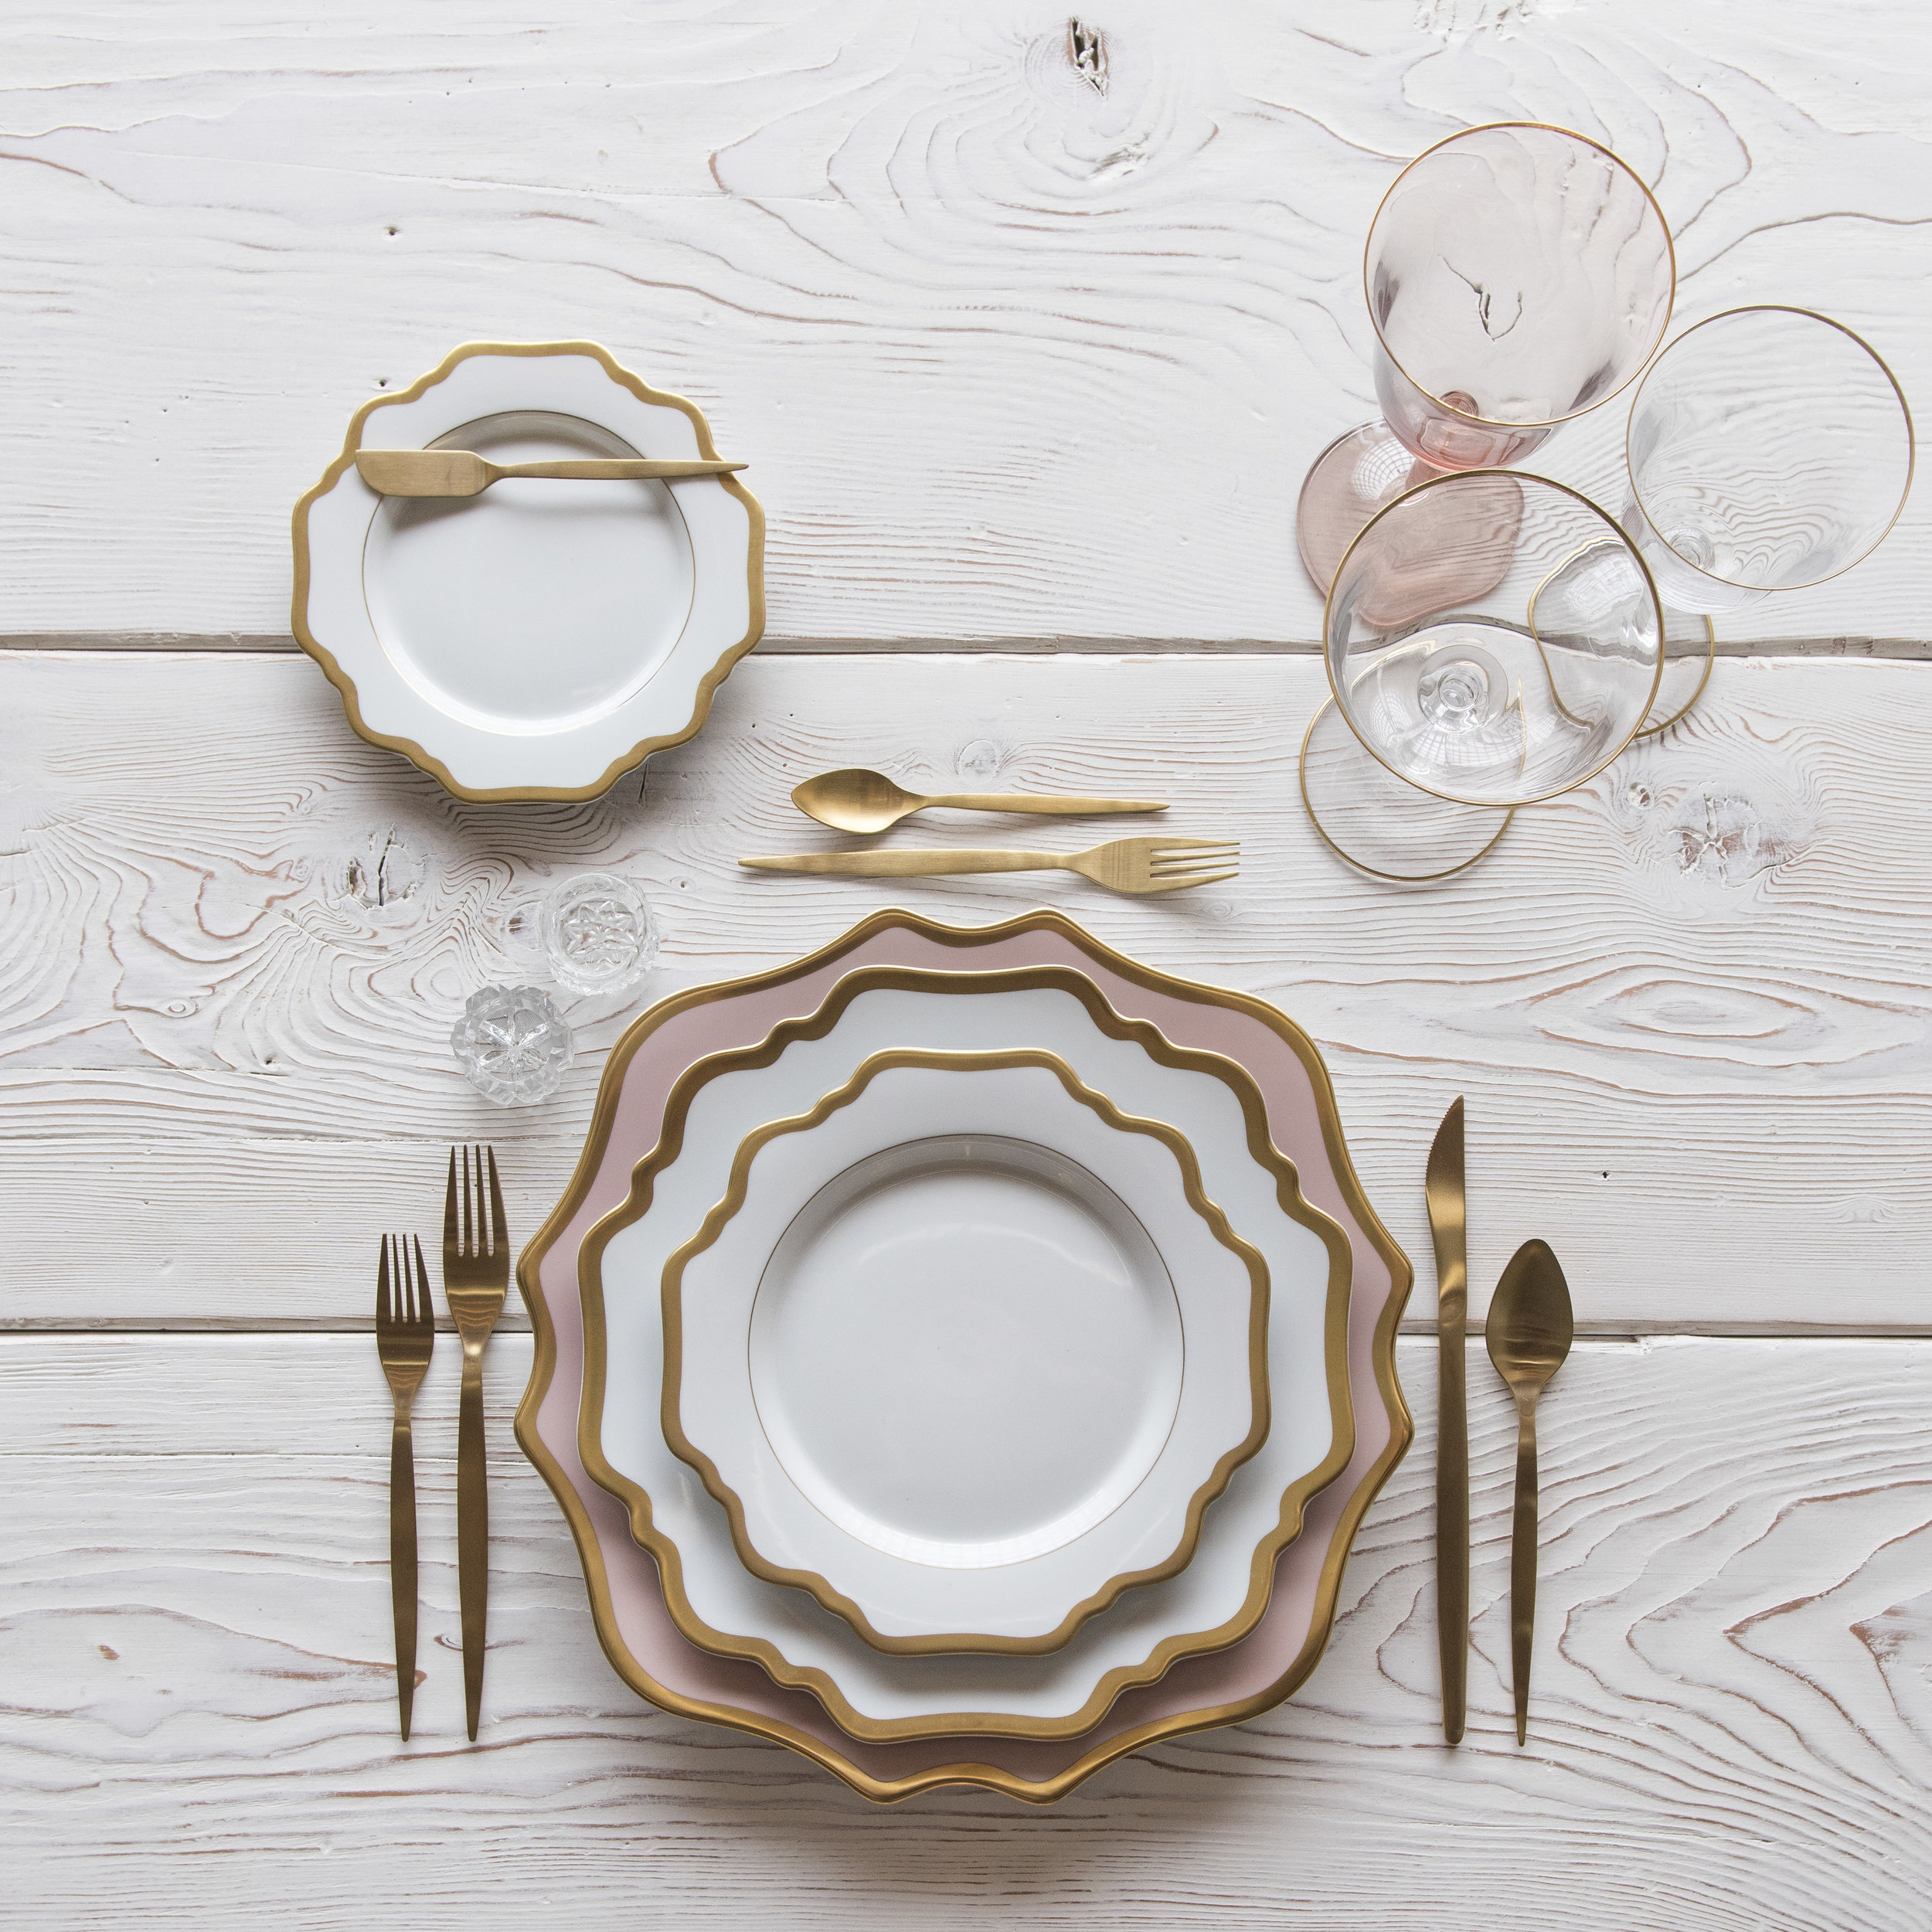 RENT: Anna Weatherley Chargers in Desert Rose/Gold + Anna Weatherley Dinnerware in White/Gold + Celeste Flatware in Matte Gold + Chloe 24k Gold Rimmed Stemware + Chloe 24k Gold Rimmed Goblet in Blush + Antique Crystal Salt Cellars  SHOP: Anna Weatherley Dinnerware in White/Gold + Chloe 24k Gold Rimmed Stemware